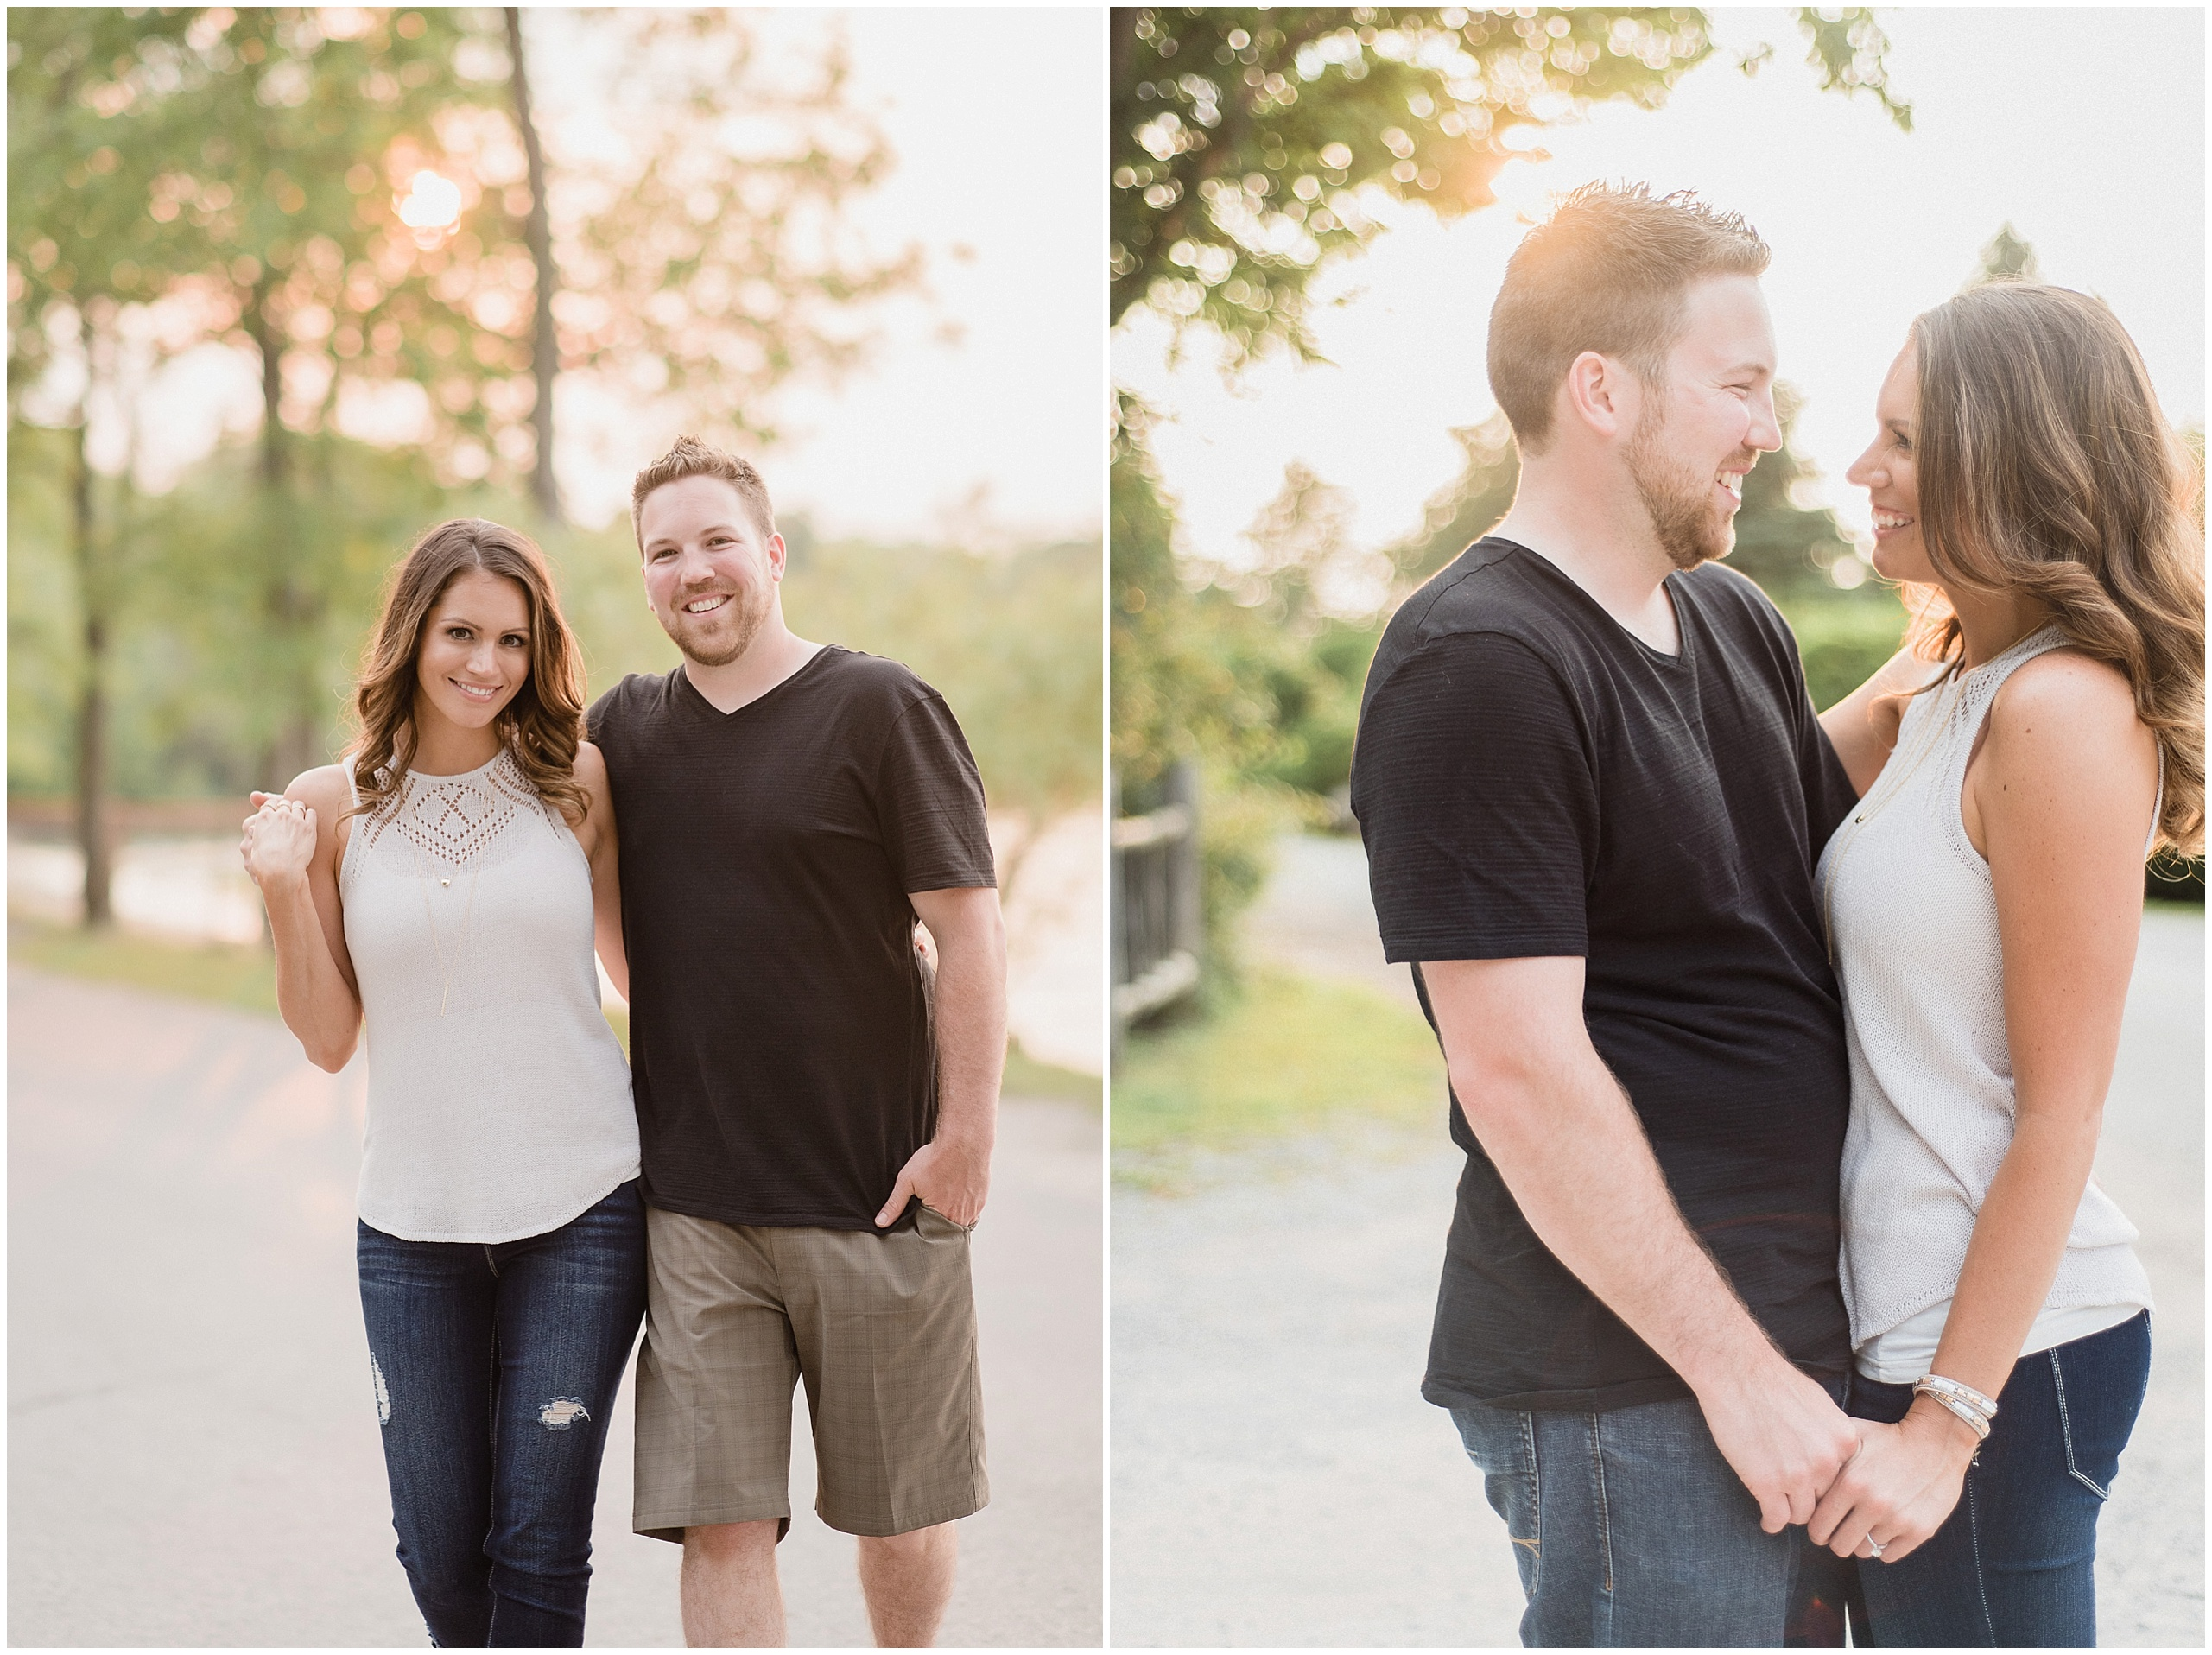 Lake Simcoe Engagement Photos by Jenn Kavanagh Photography